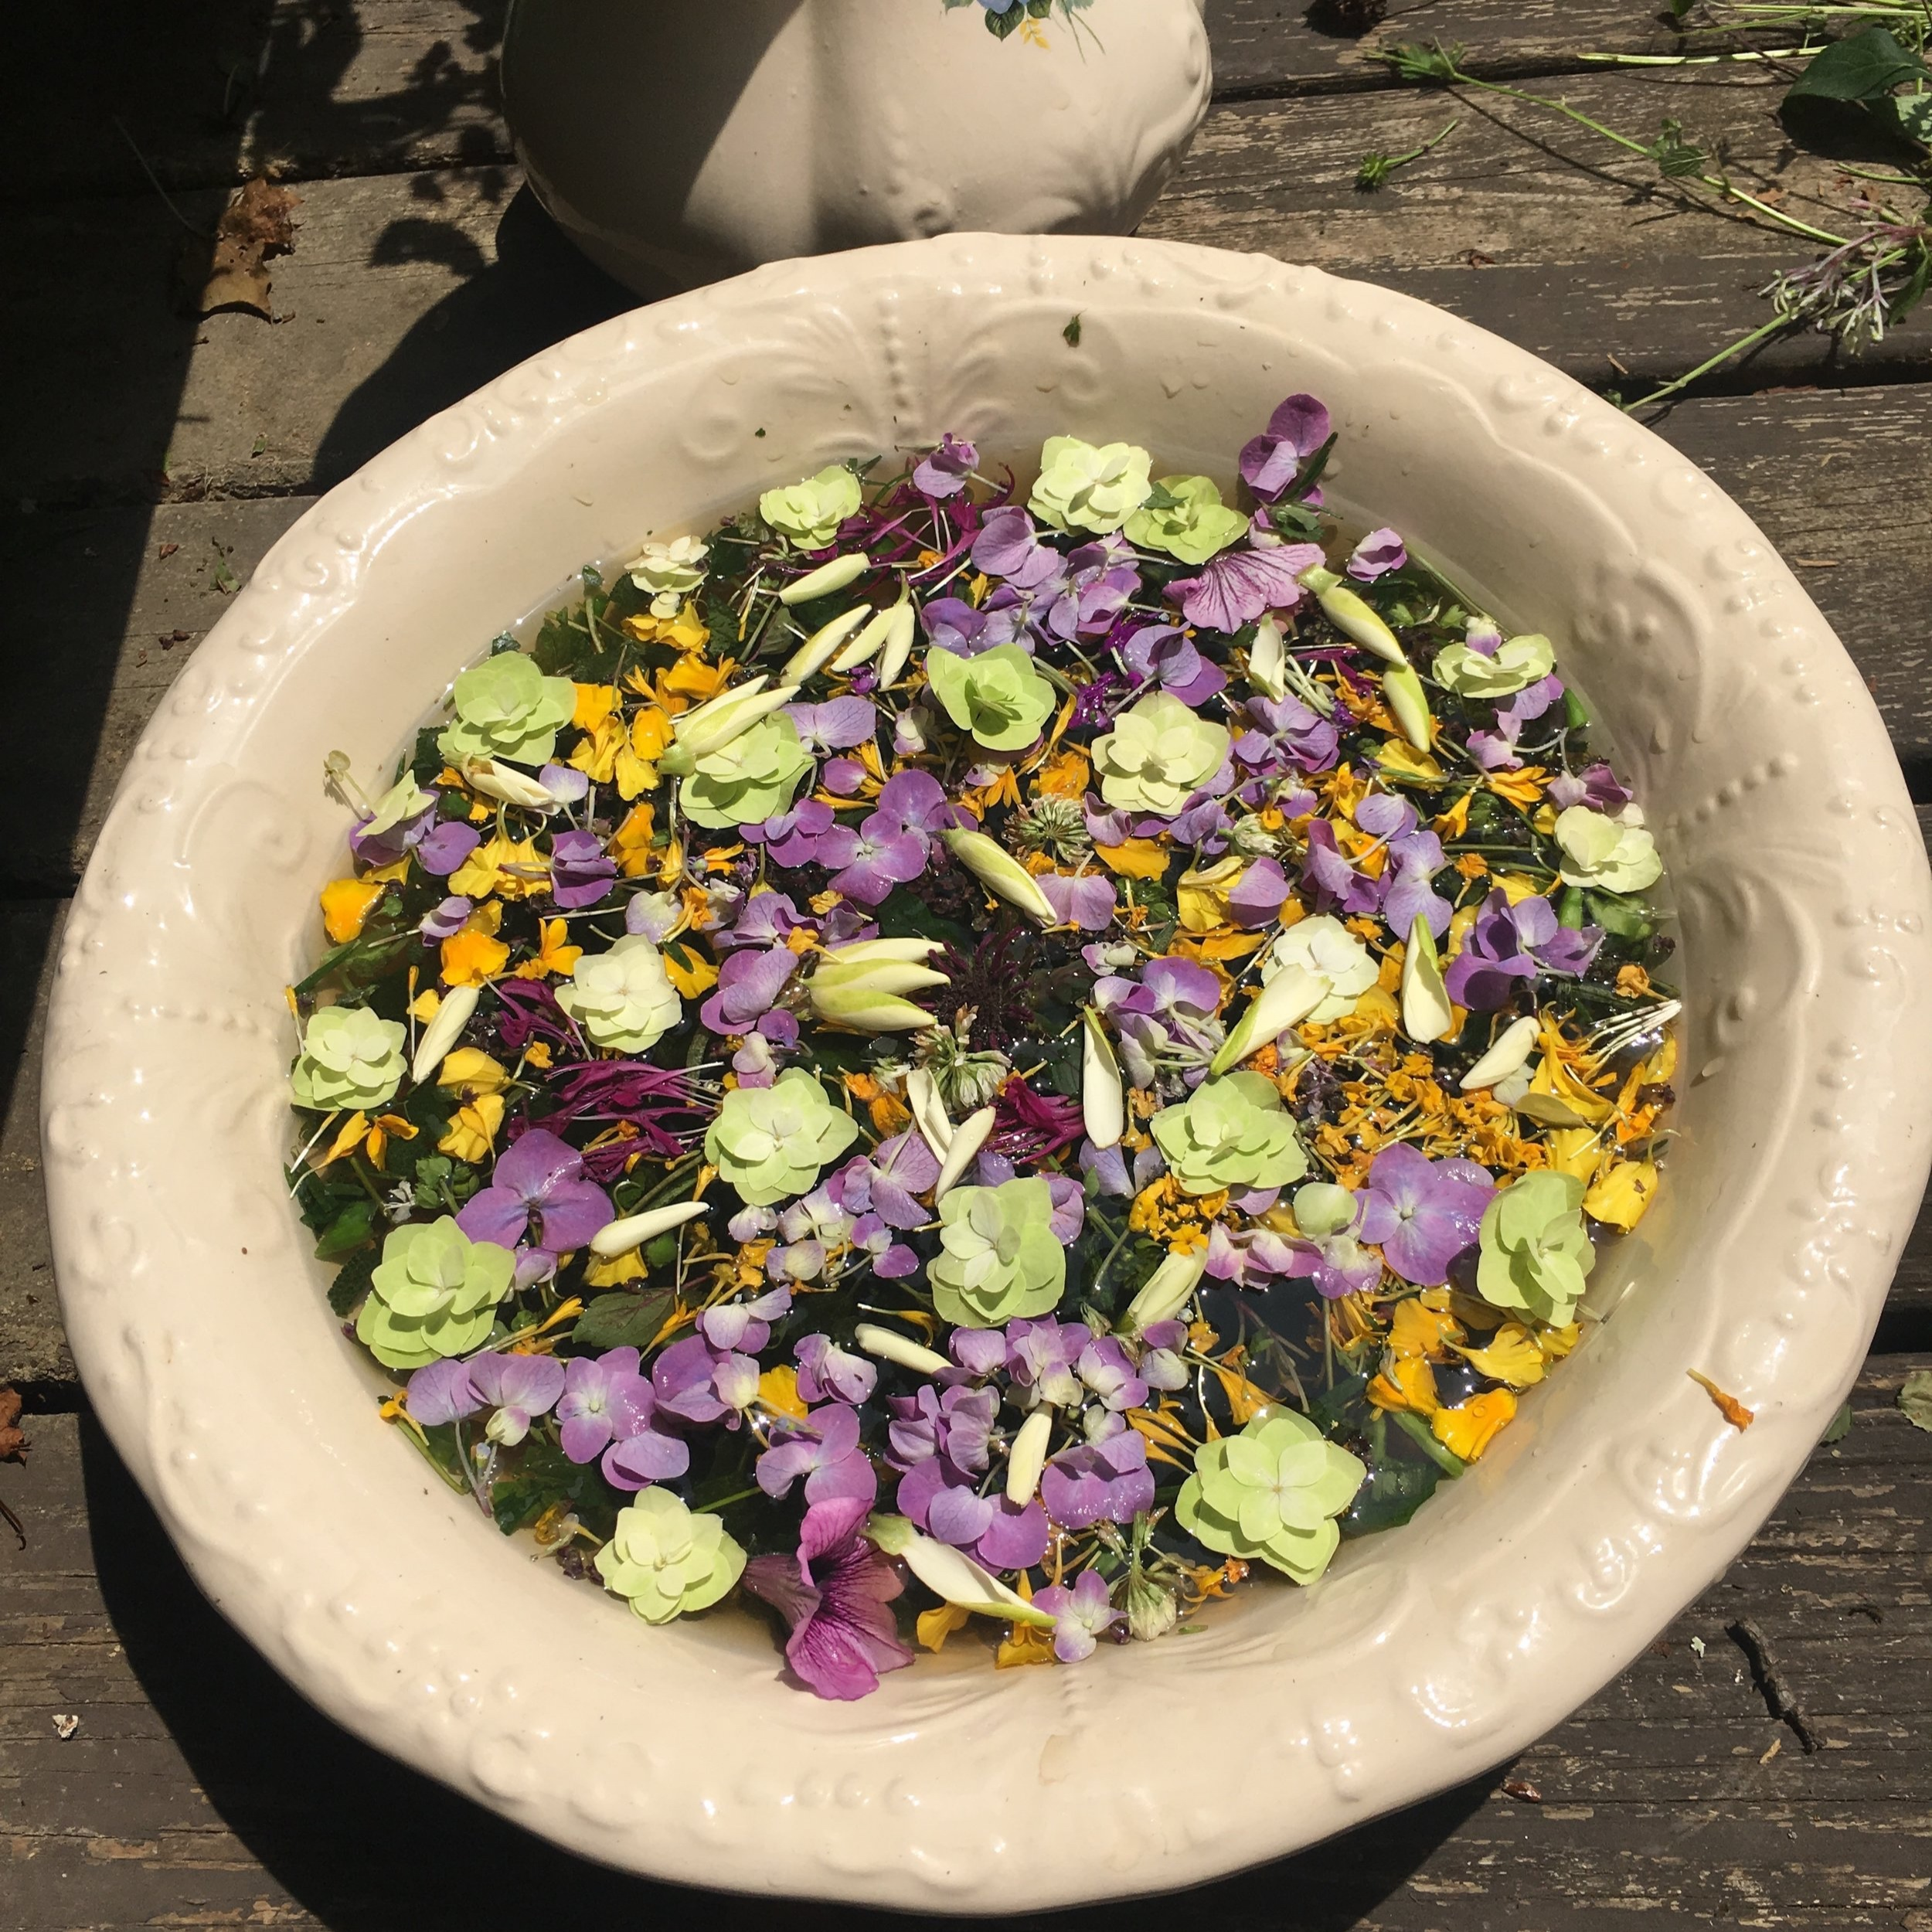 Herb & Flower Bath 2019